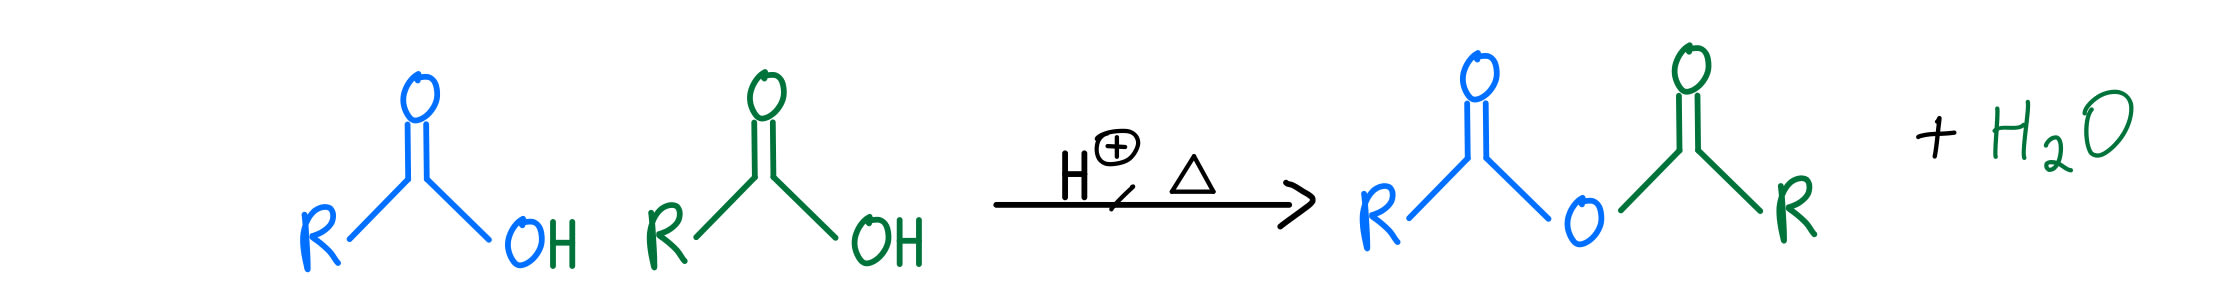 Anhydride formation